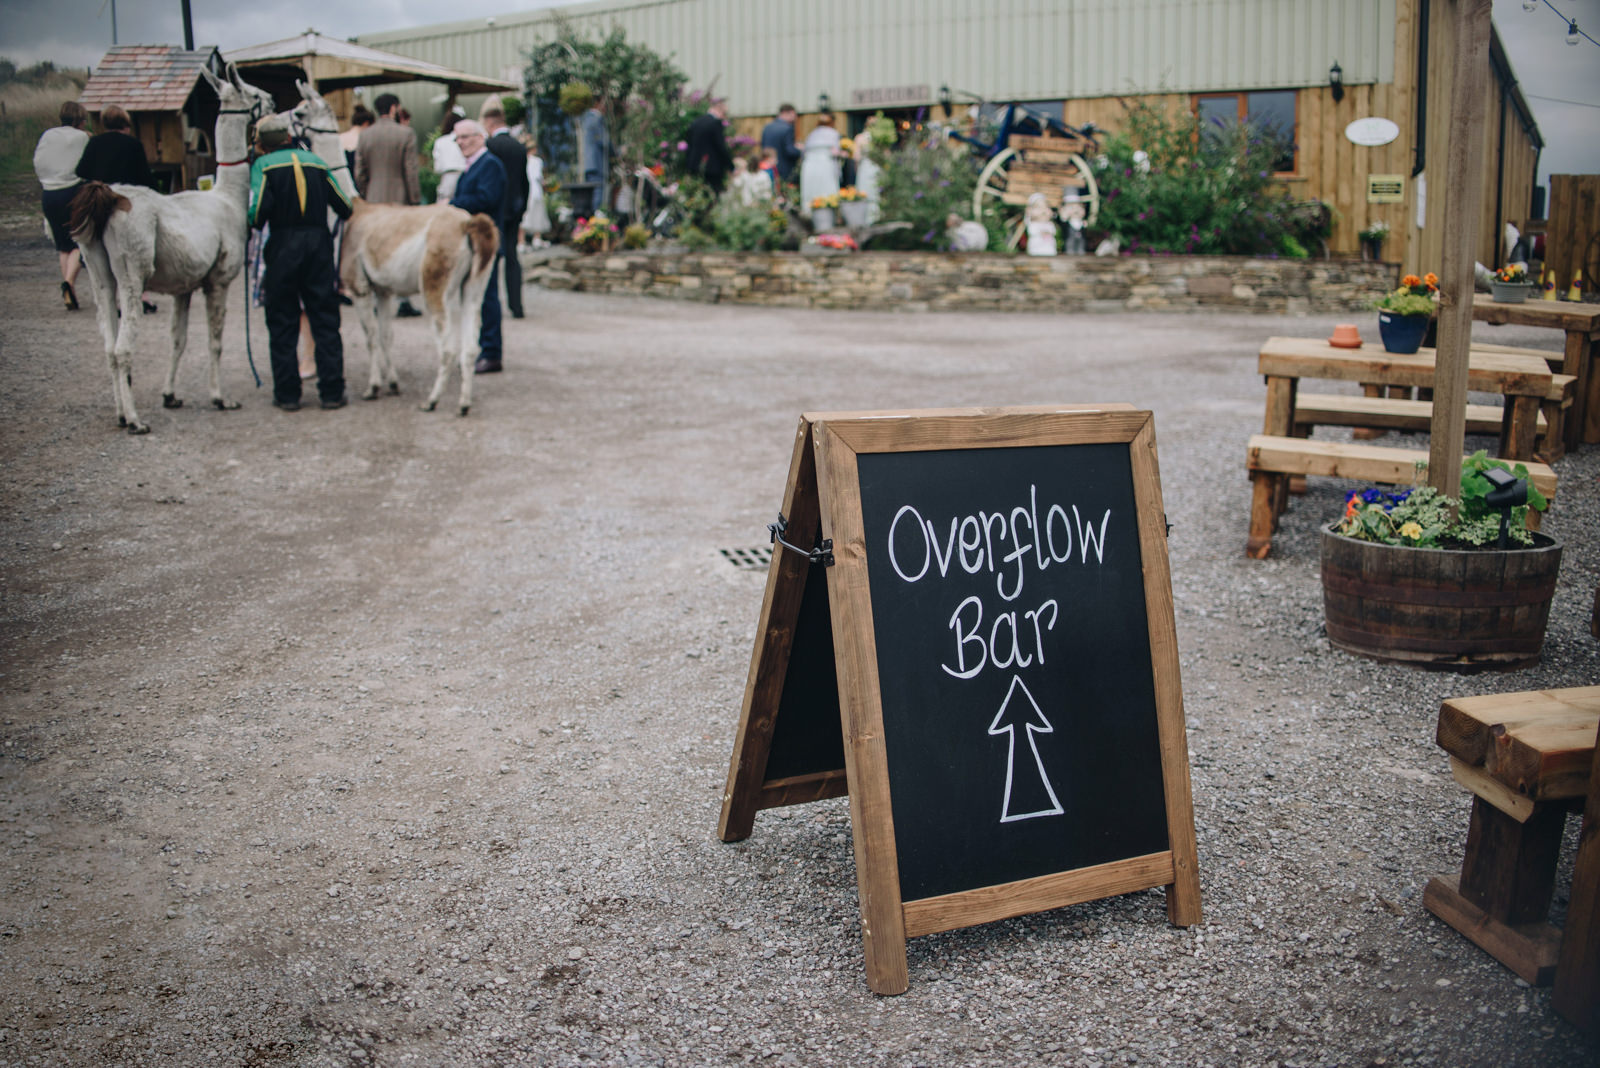 Alternative Manchester North West Wedding Photography, The Wellbeing Farm Wedding Photography | Rustic Pokemon Comic Book Wedding| The Pin-Up Bride